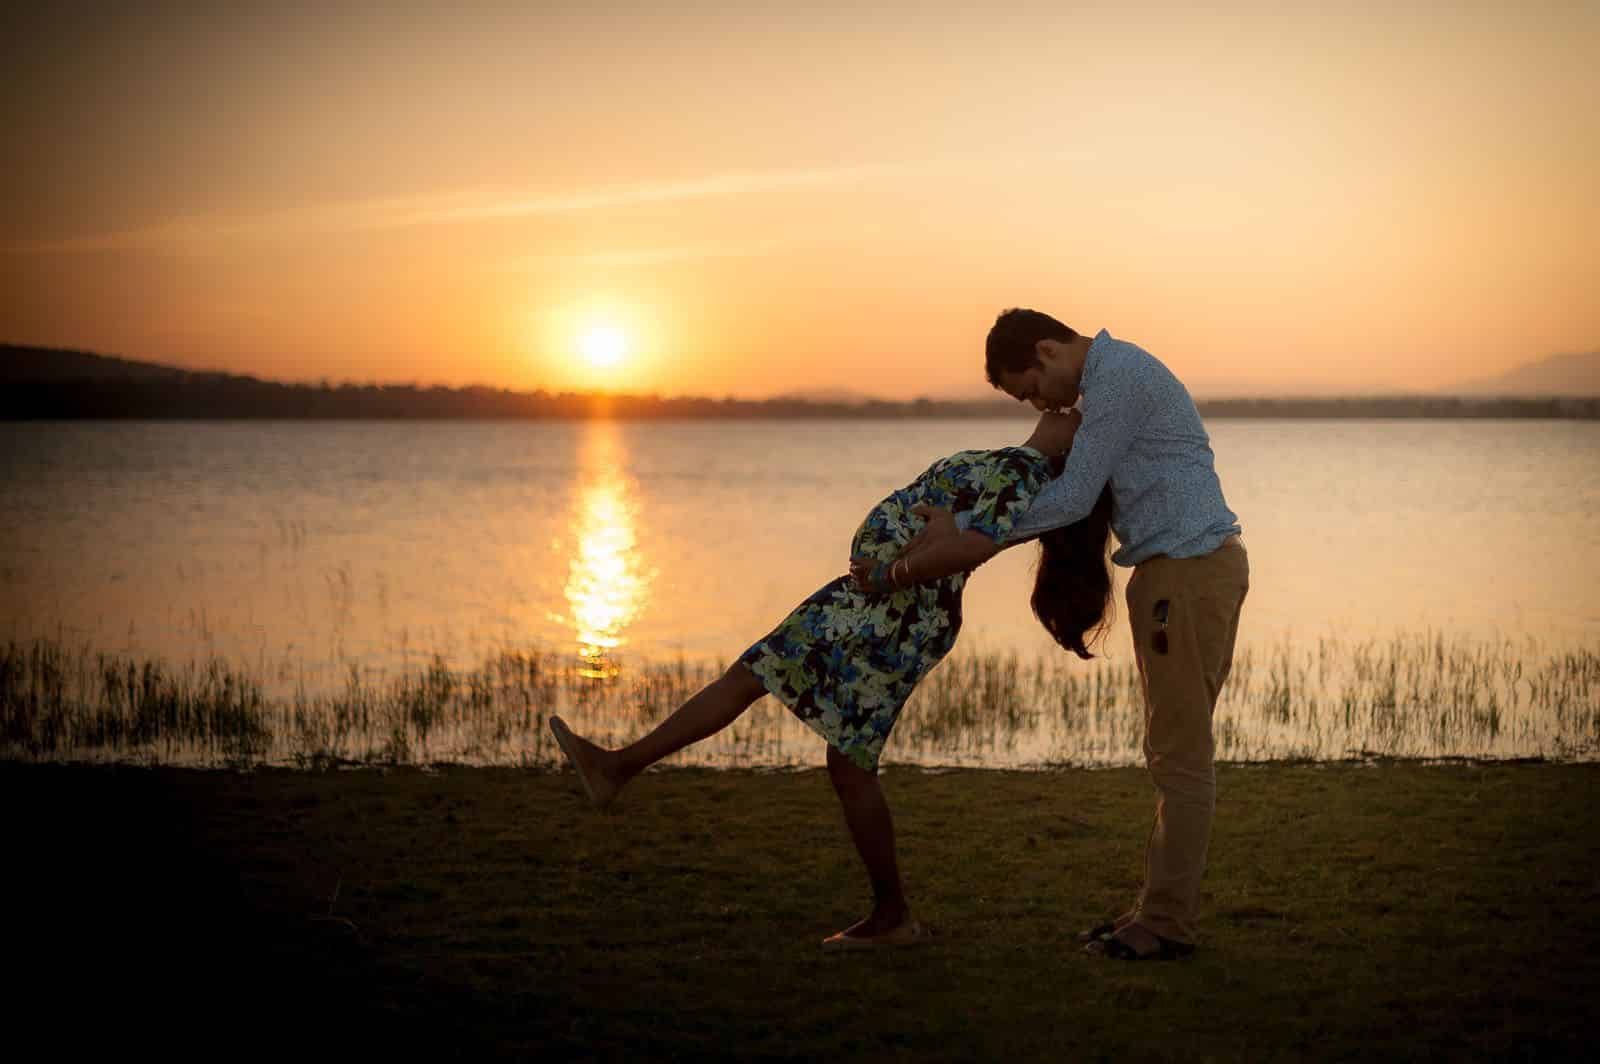 anoop-maternity-photographer-bangalore-orange-county-sunset